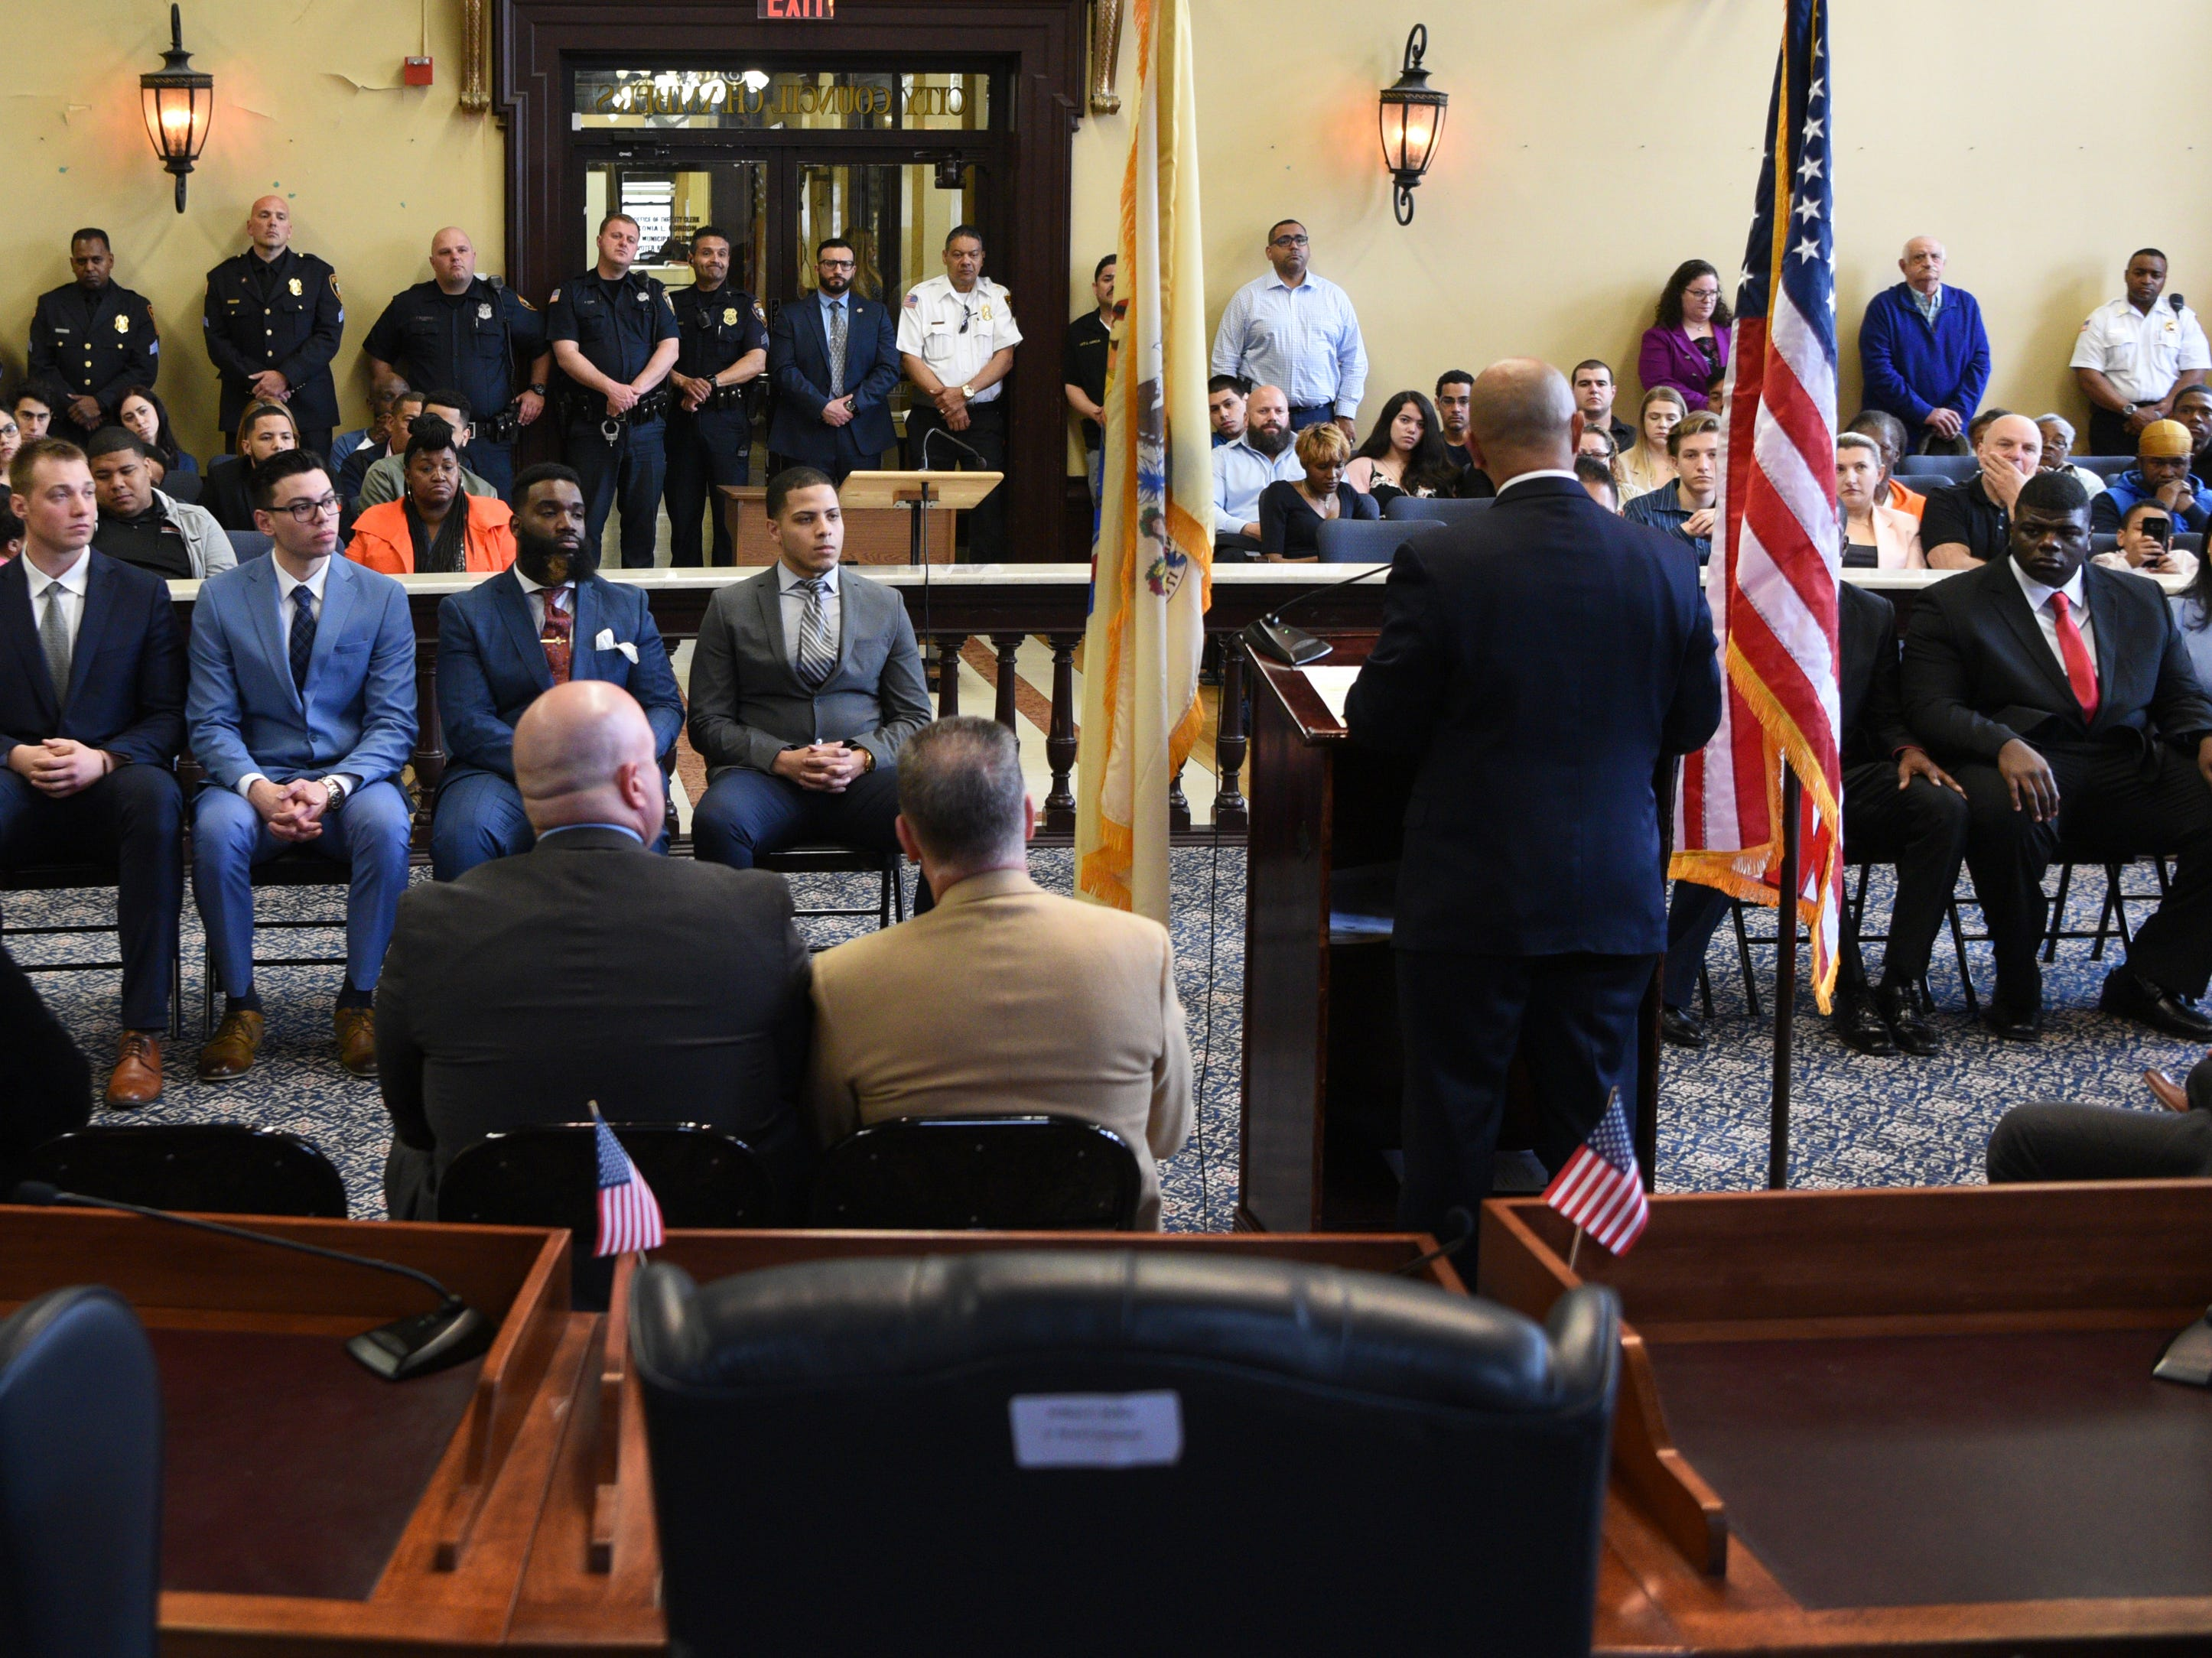 Eight new Paterson police officers, seated, listen to an address by Det. Alex Cruz, Paterson PBA presideint, during their swearing-in ceremony at Paterson City Hall on Monday, April 14, 2019.